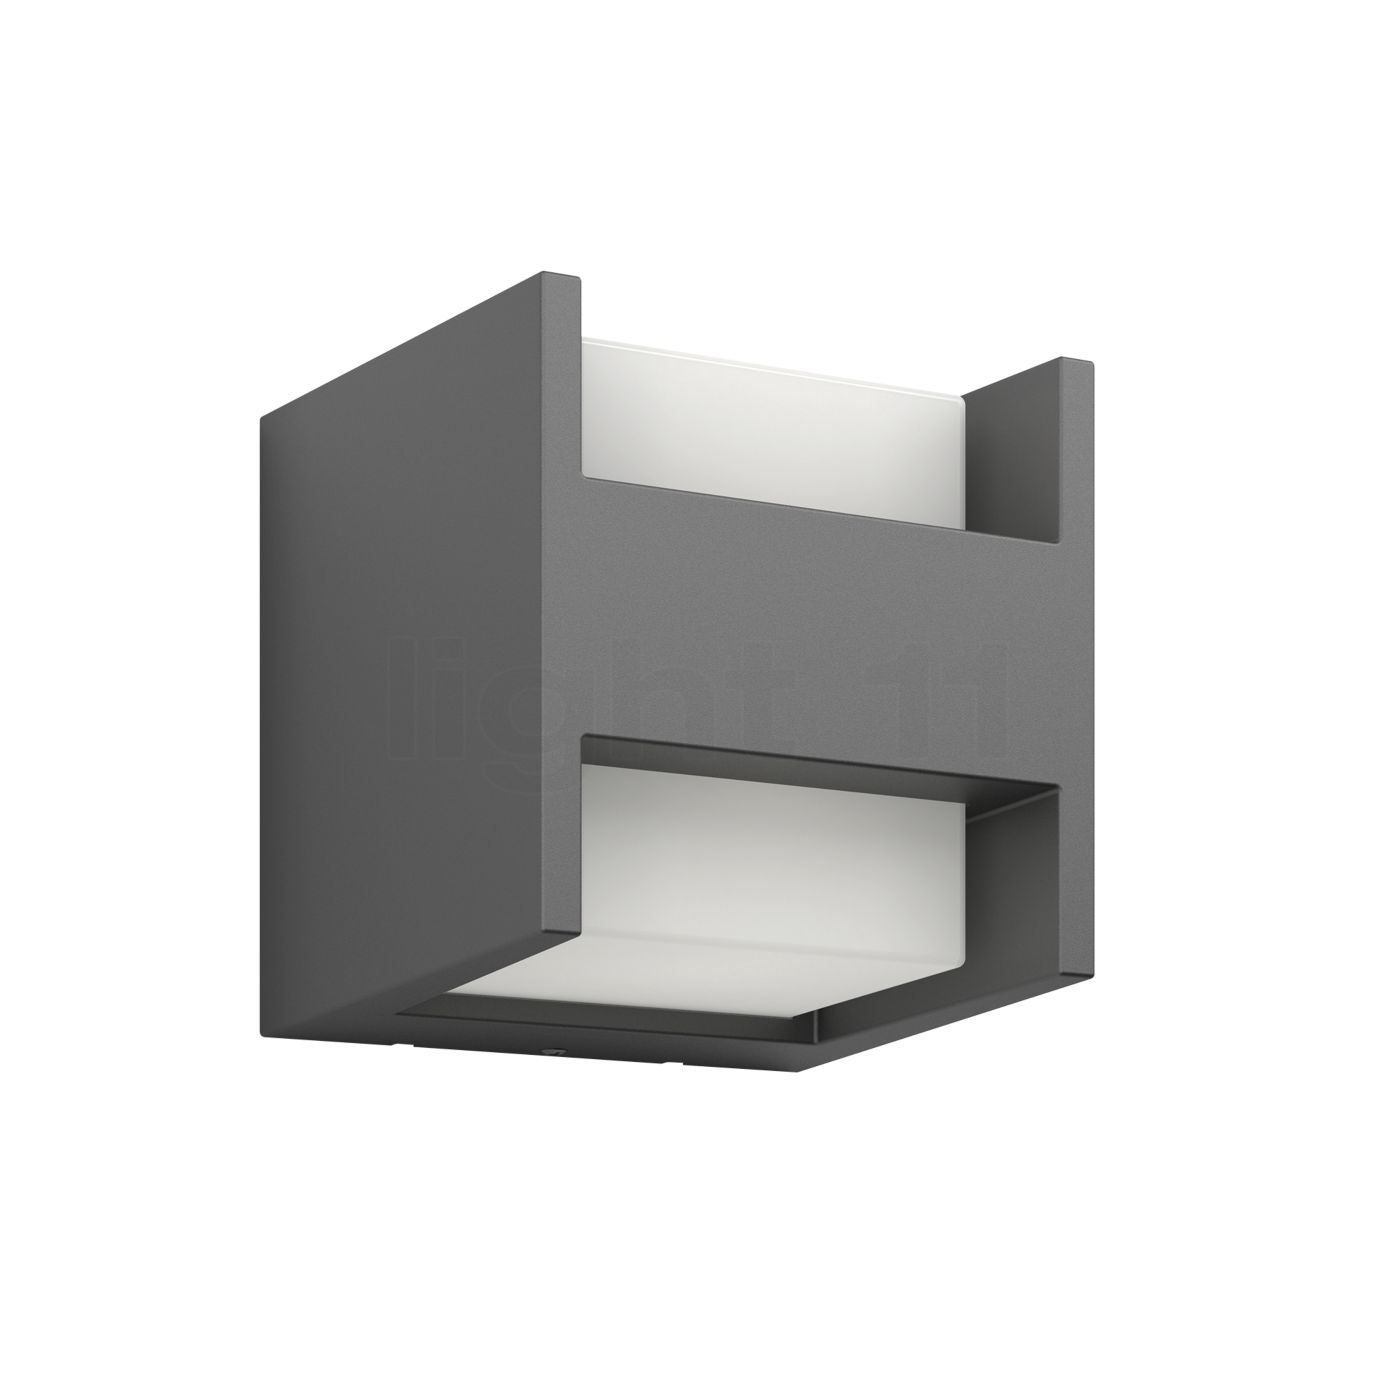 Philips Outdoor Led Lighting Buy philips mygarden arbour wall light 13 cm at light11 workwithnaturefo